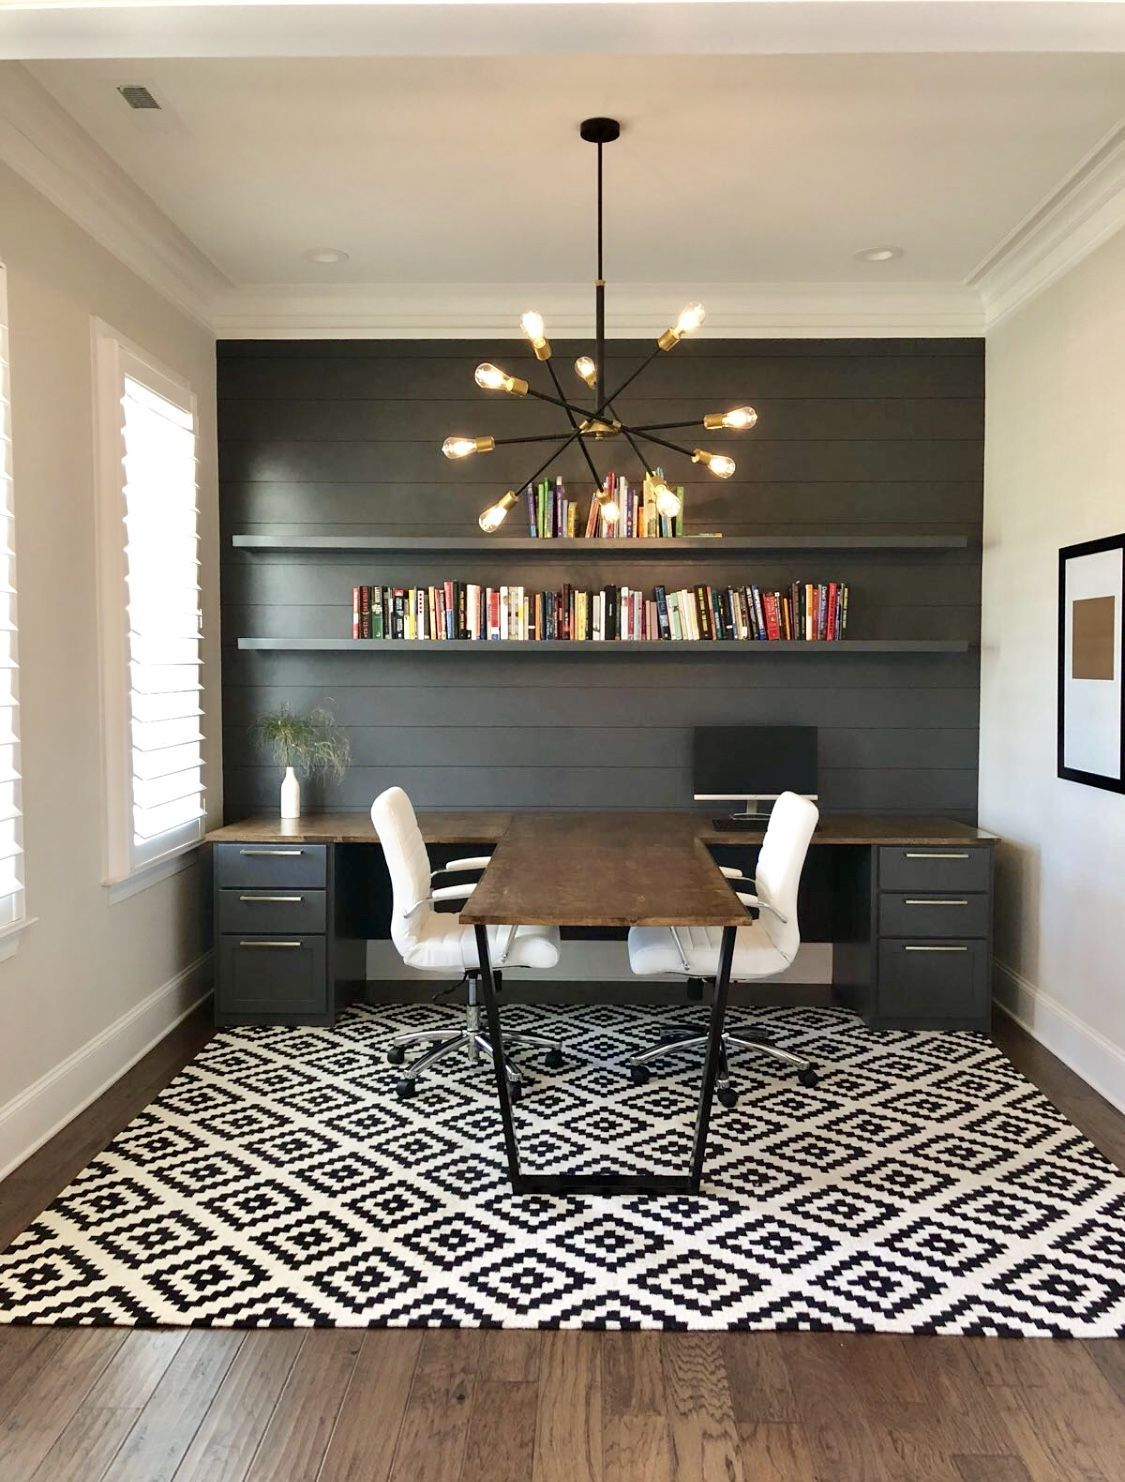 Luxury Home Office Design Ideas Home Offices Are Now A Standard To Contemporary Houses We All Have Obtained Home Office Design Home Office Decor Brown Rooms